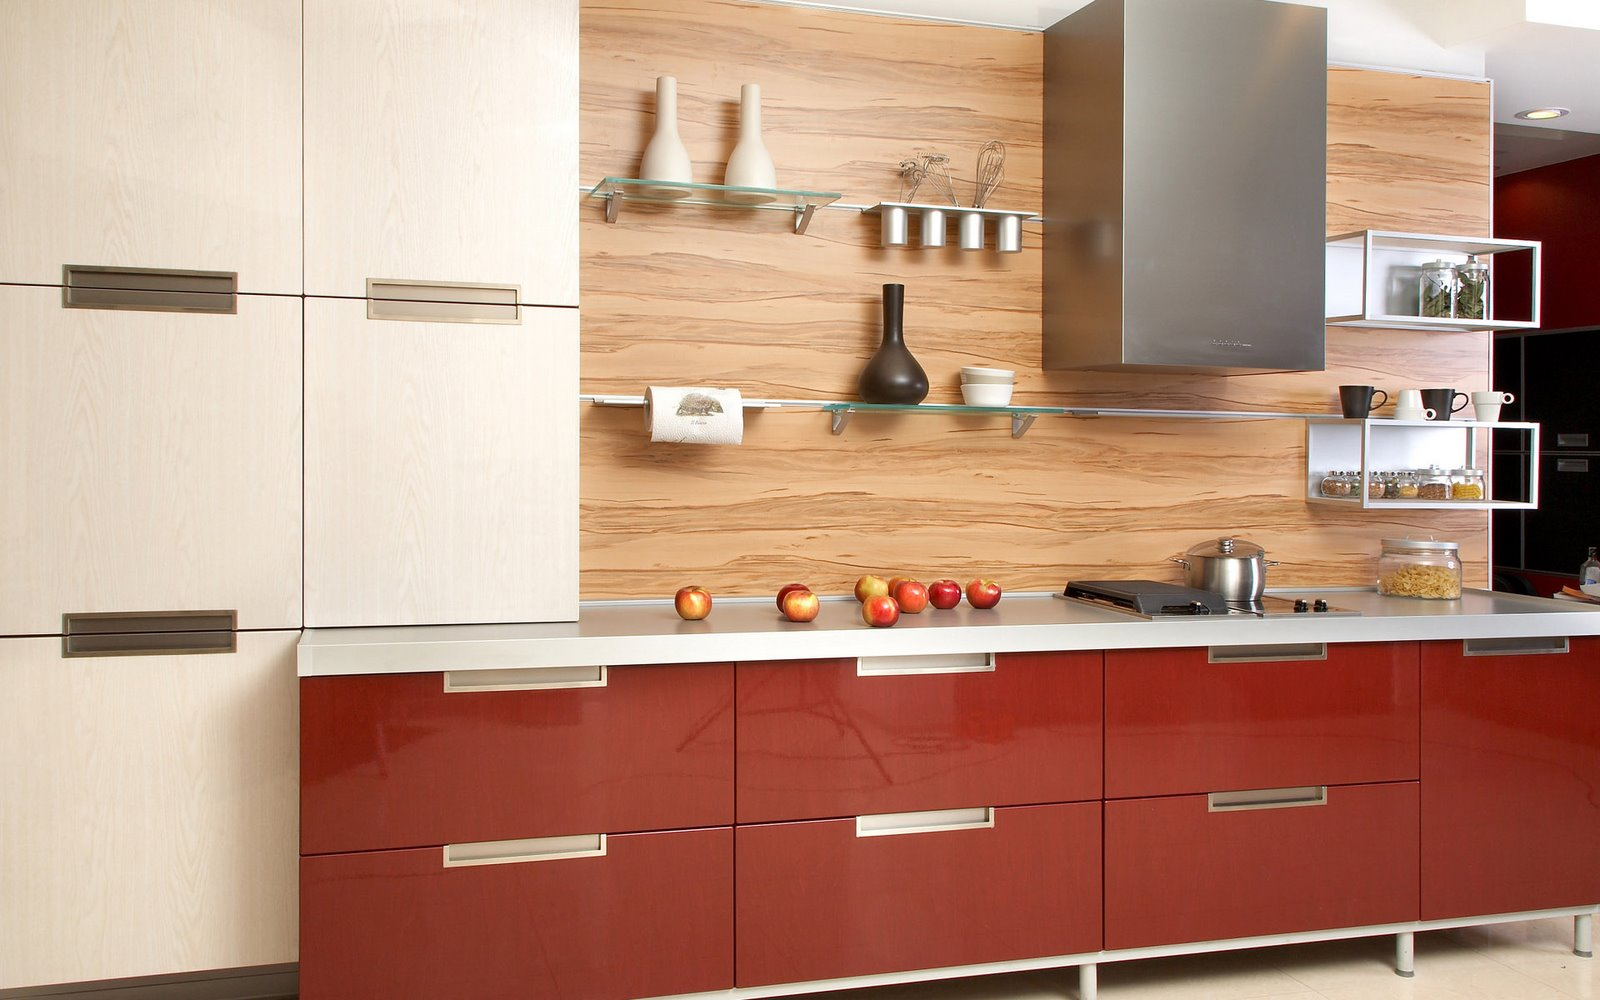 Creative subway tile contemporary kitchen backsplash